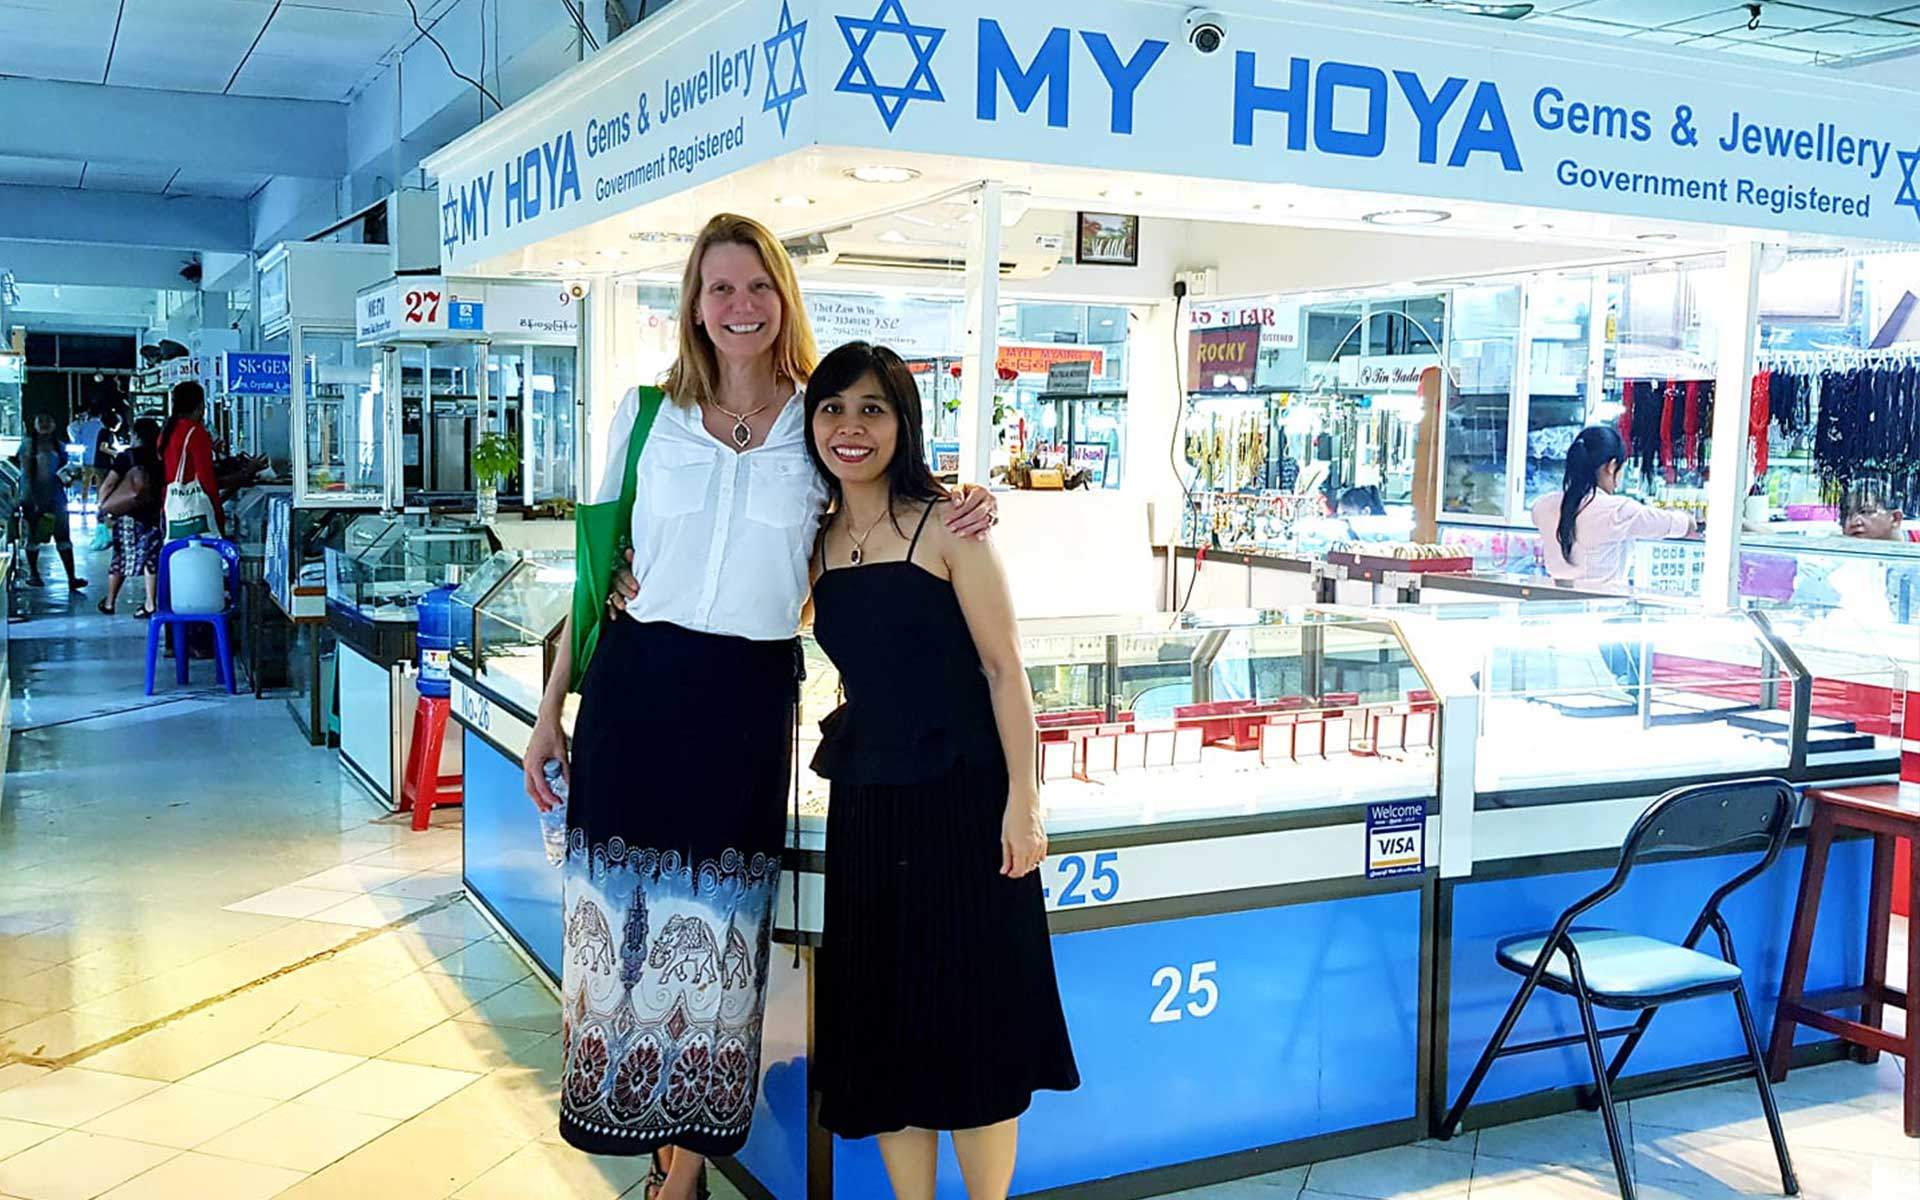 My-Hoya Gem and Jewelry Shop